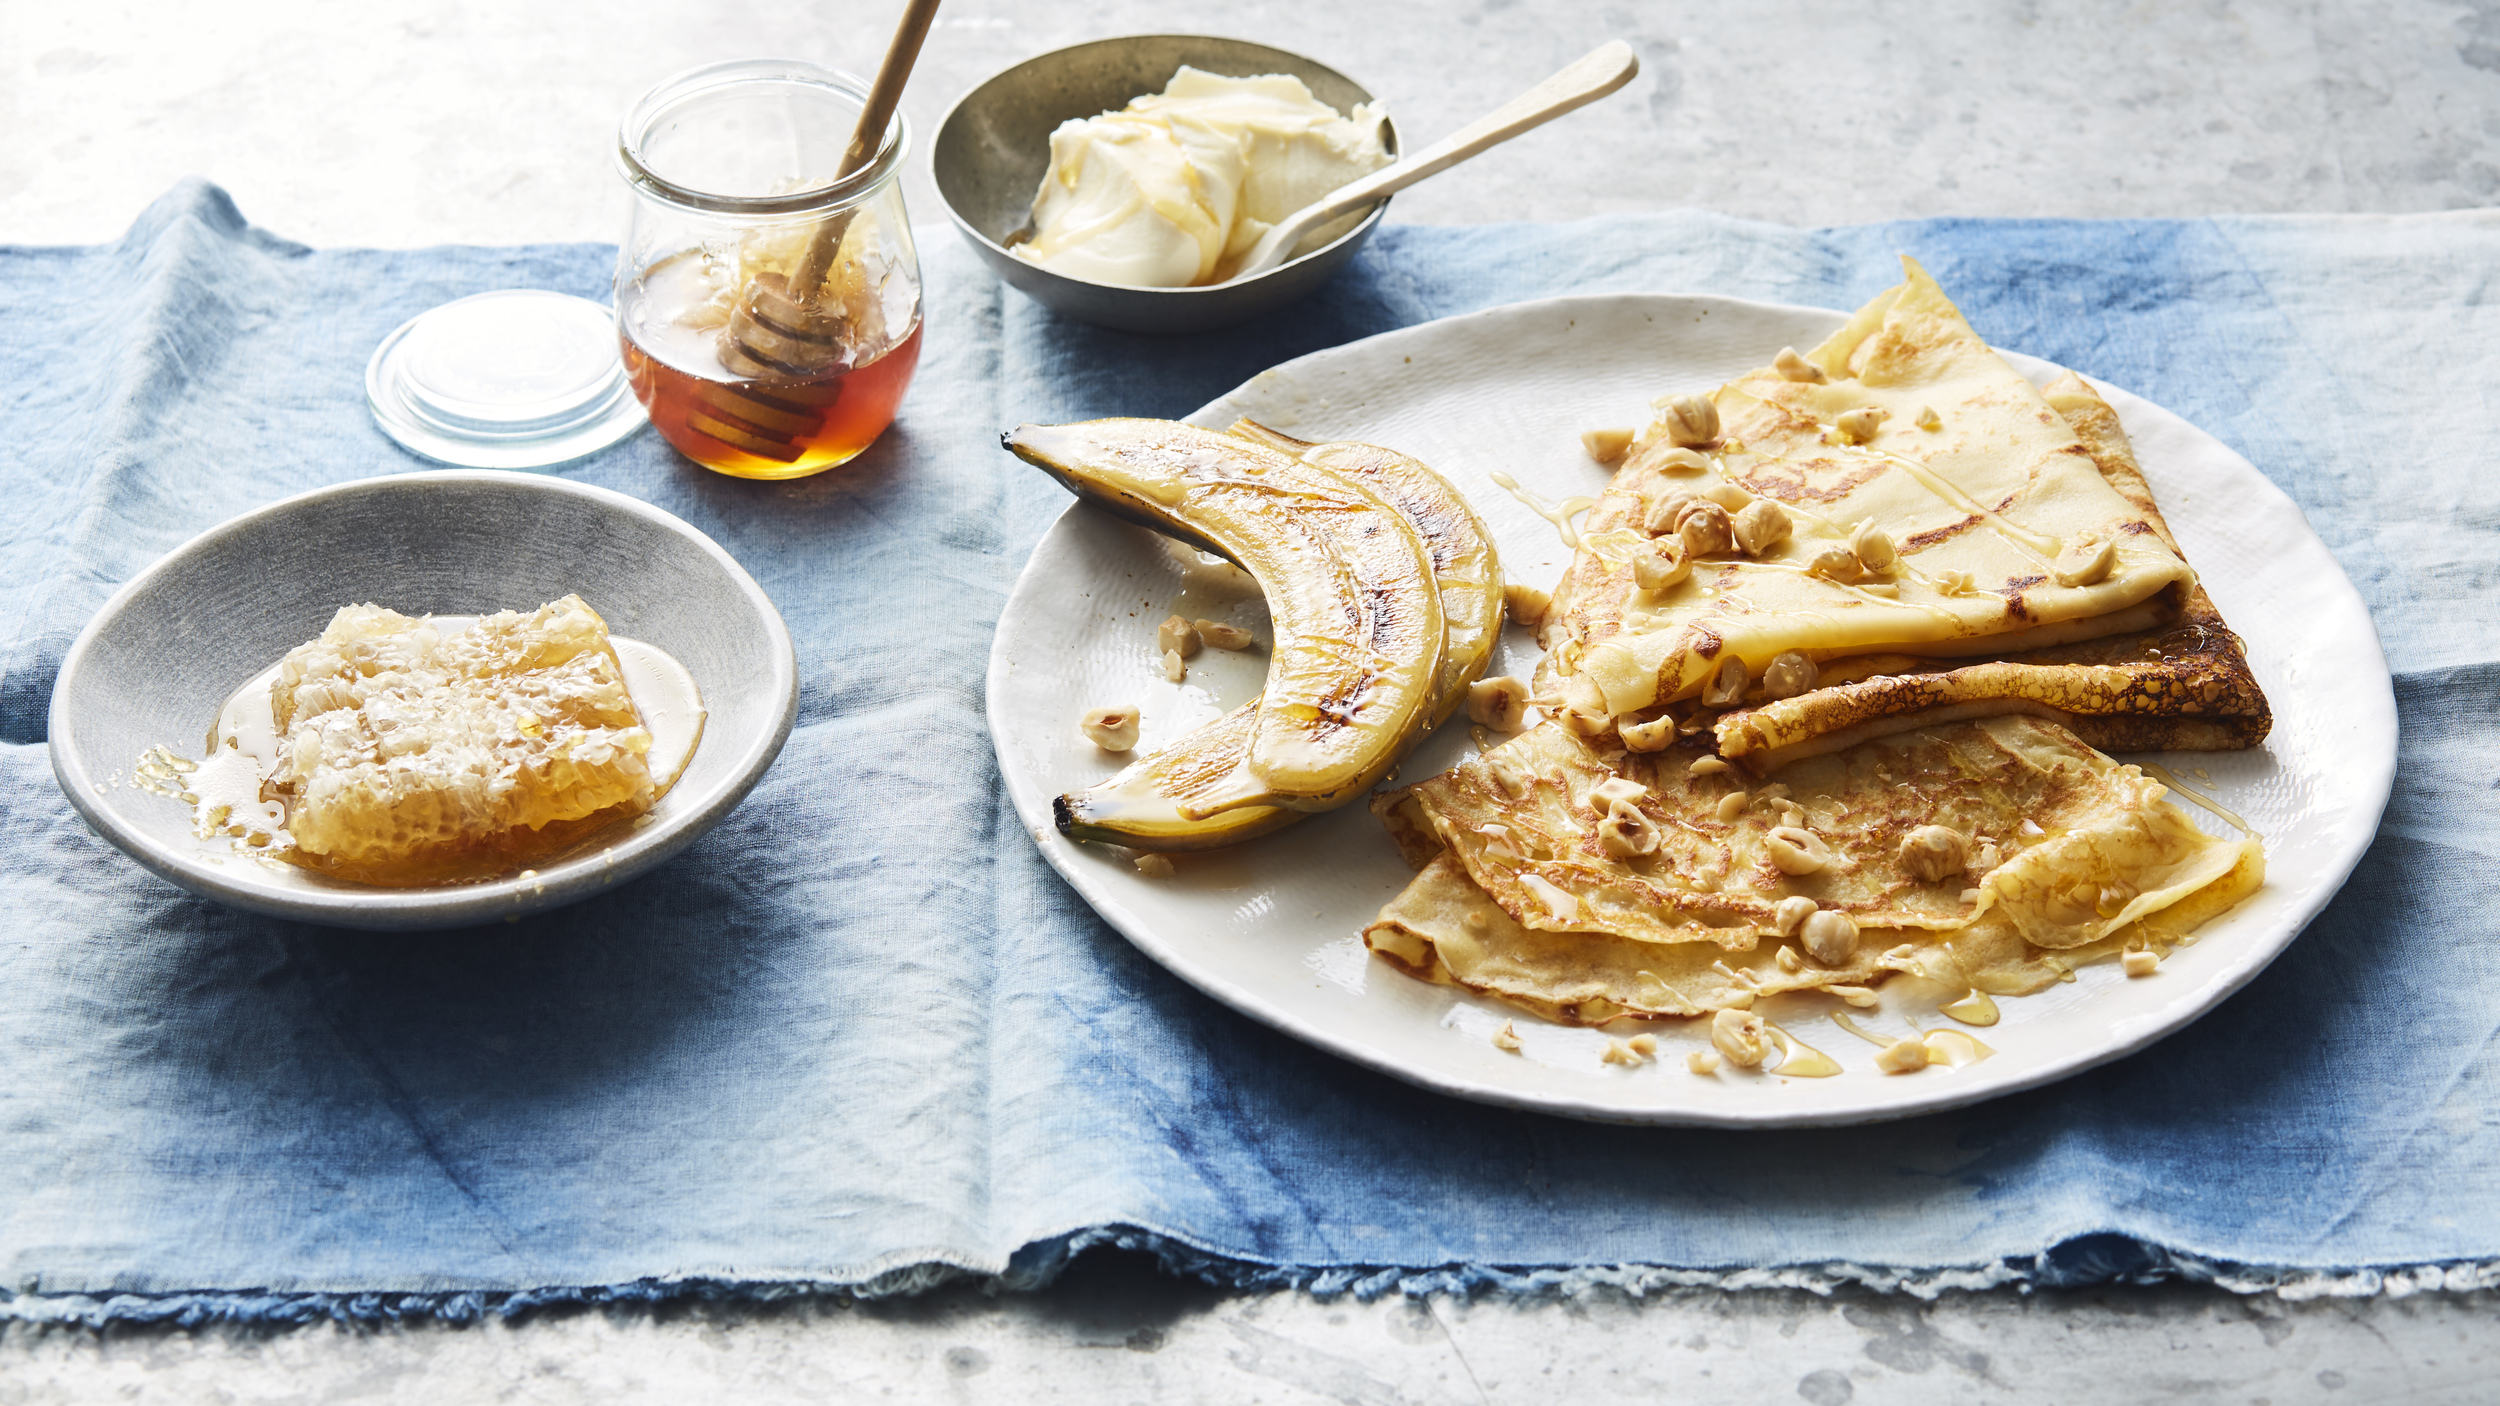 Honey crepes with caramelized banana and mascarpone, Photography: Brett Stevens, Art Direction: Anne Marie Cummins, Food & Props Styling: Marcus Hay for SMH, Inc